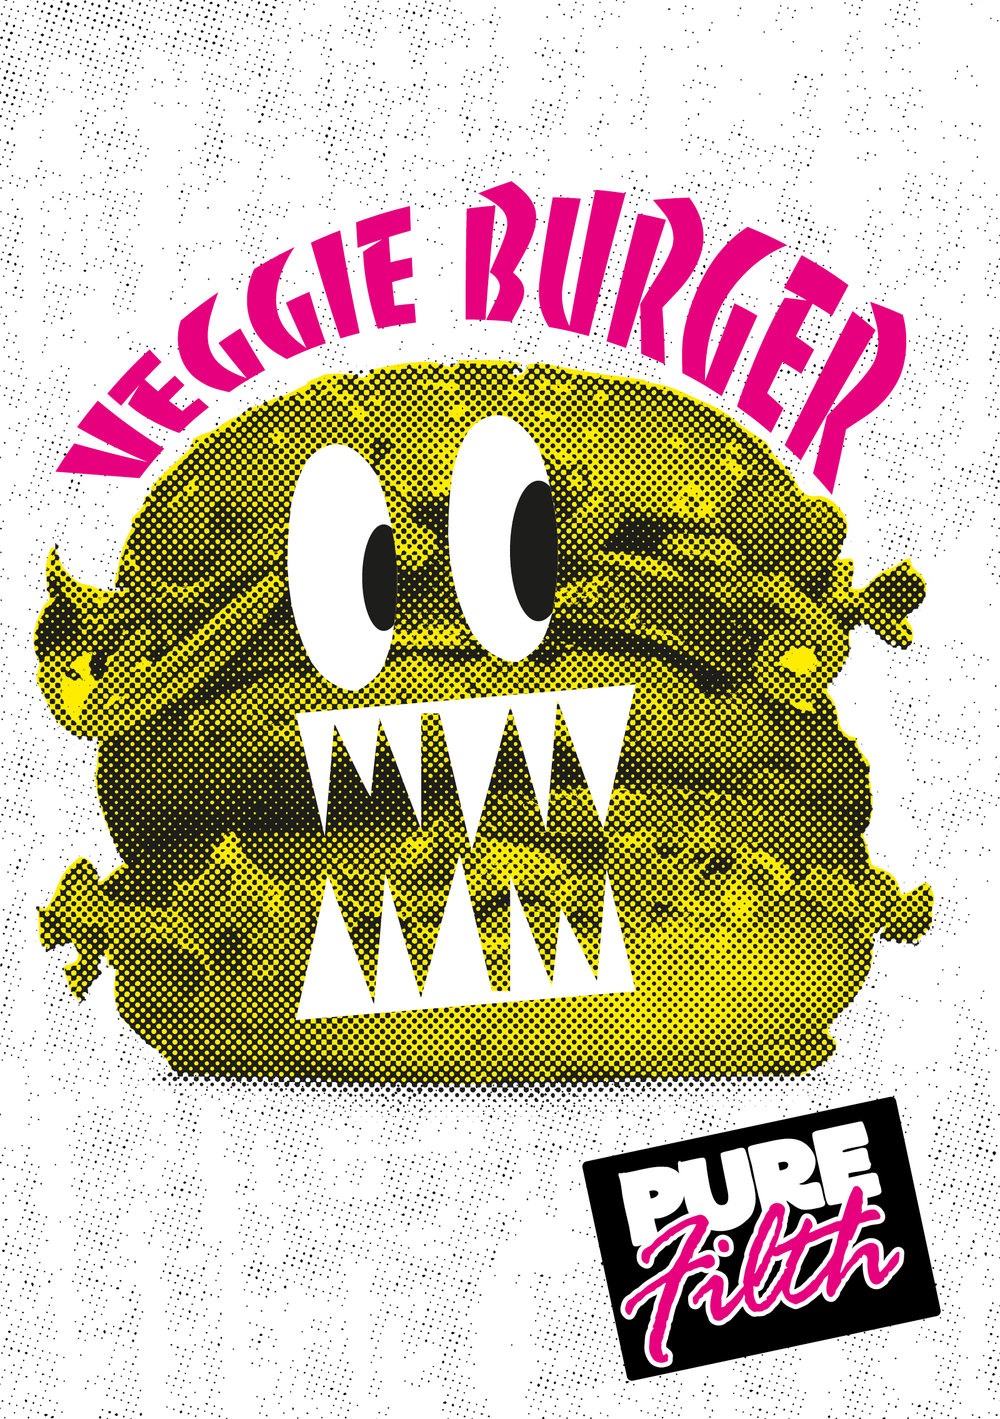 Pure Filth | Illustration | Design | By James-Lee Duffy